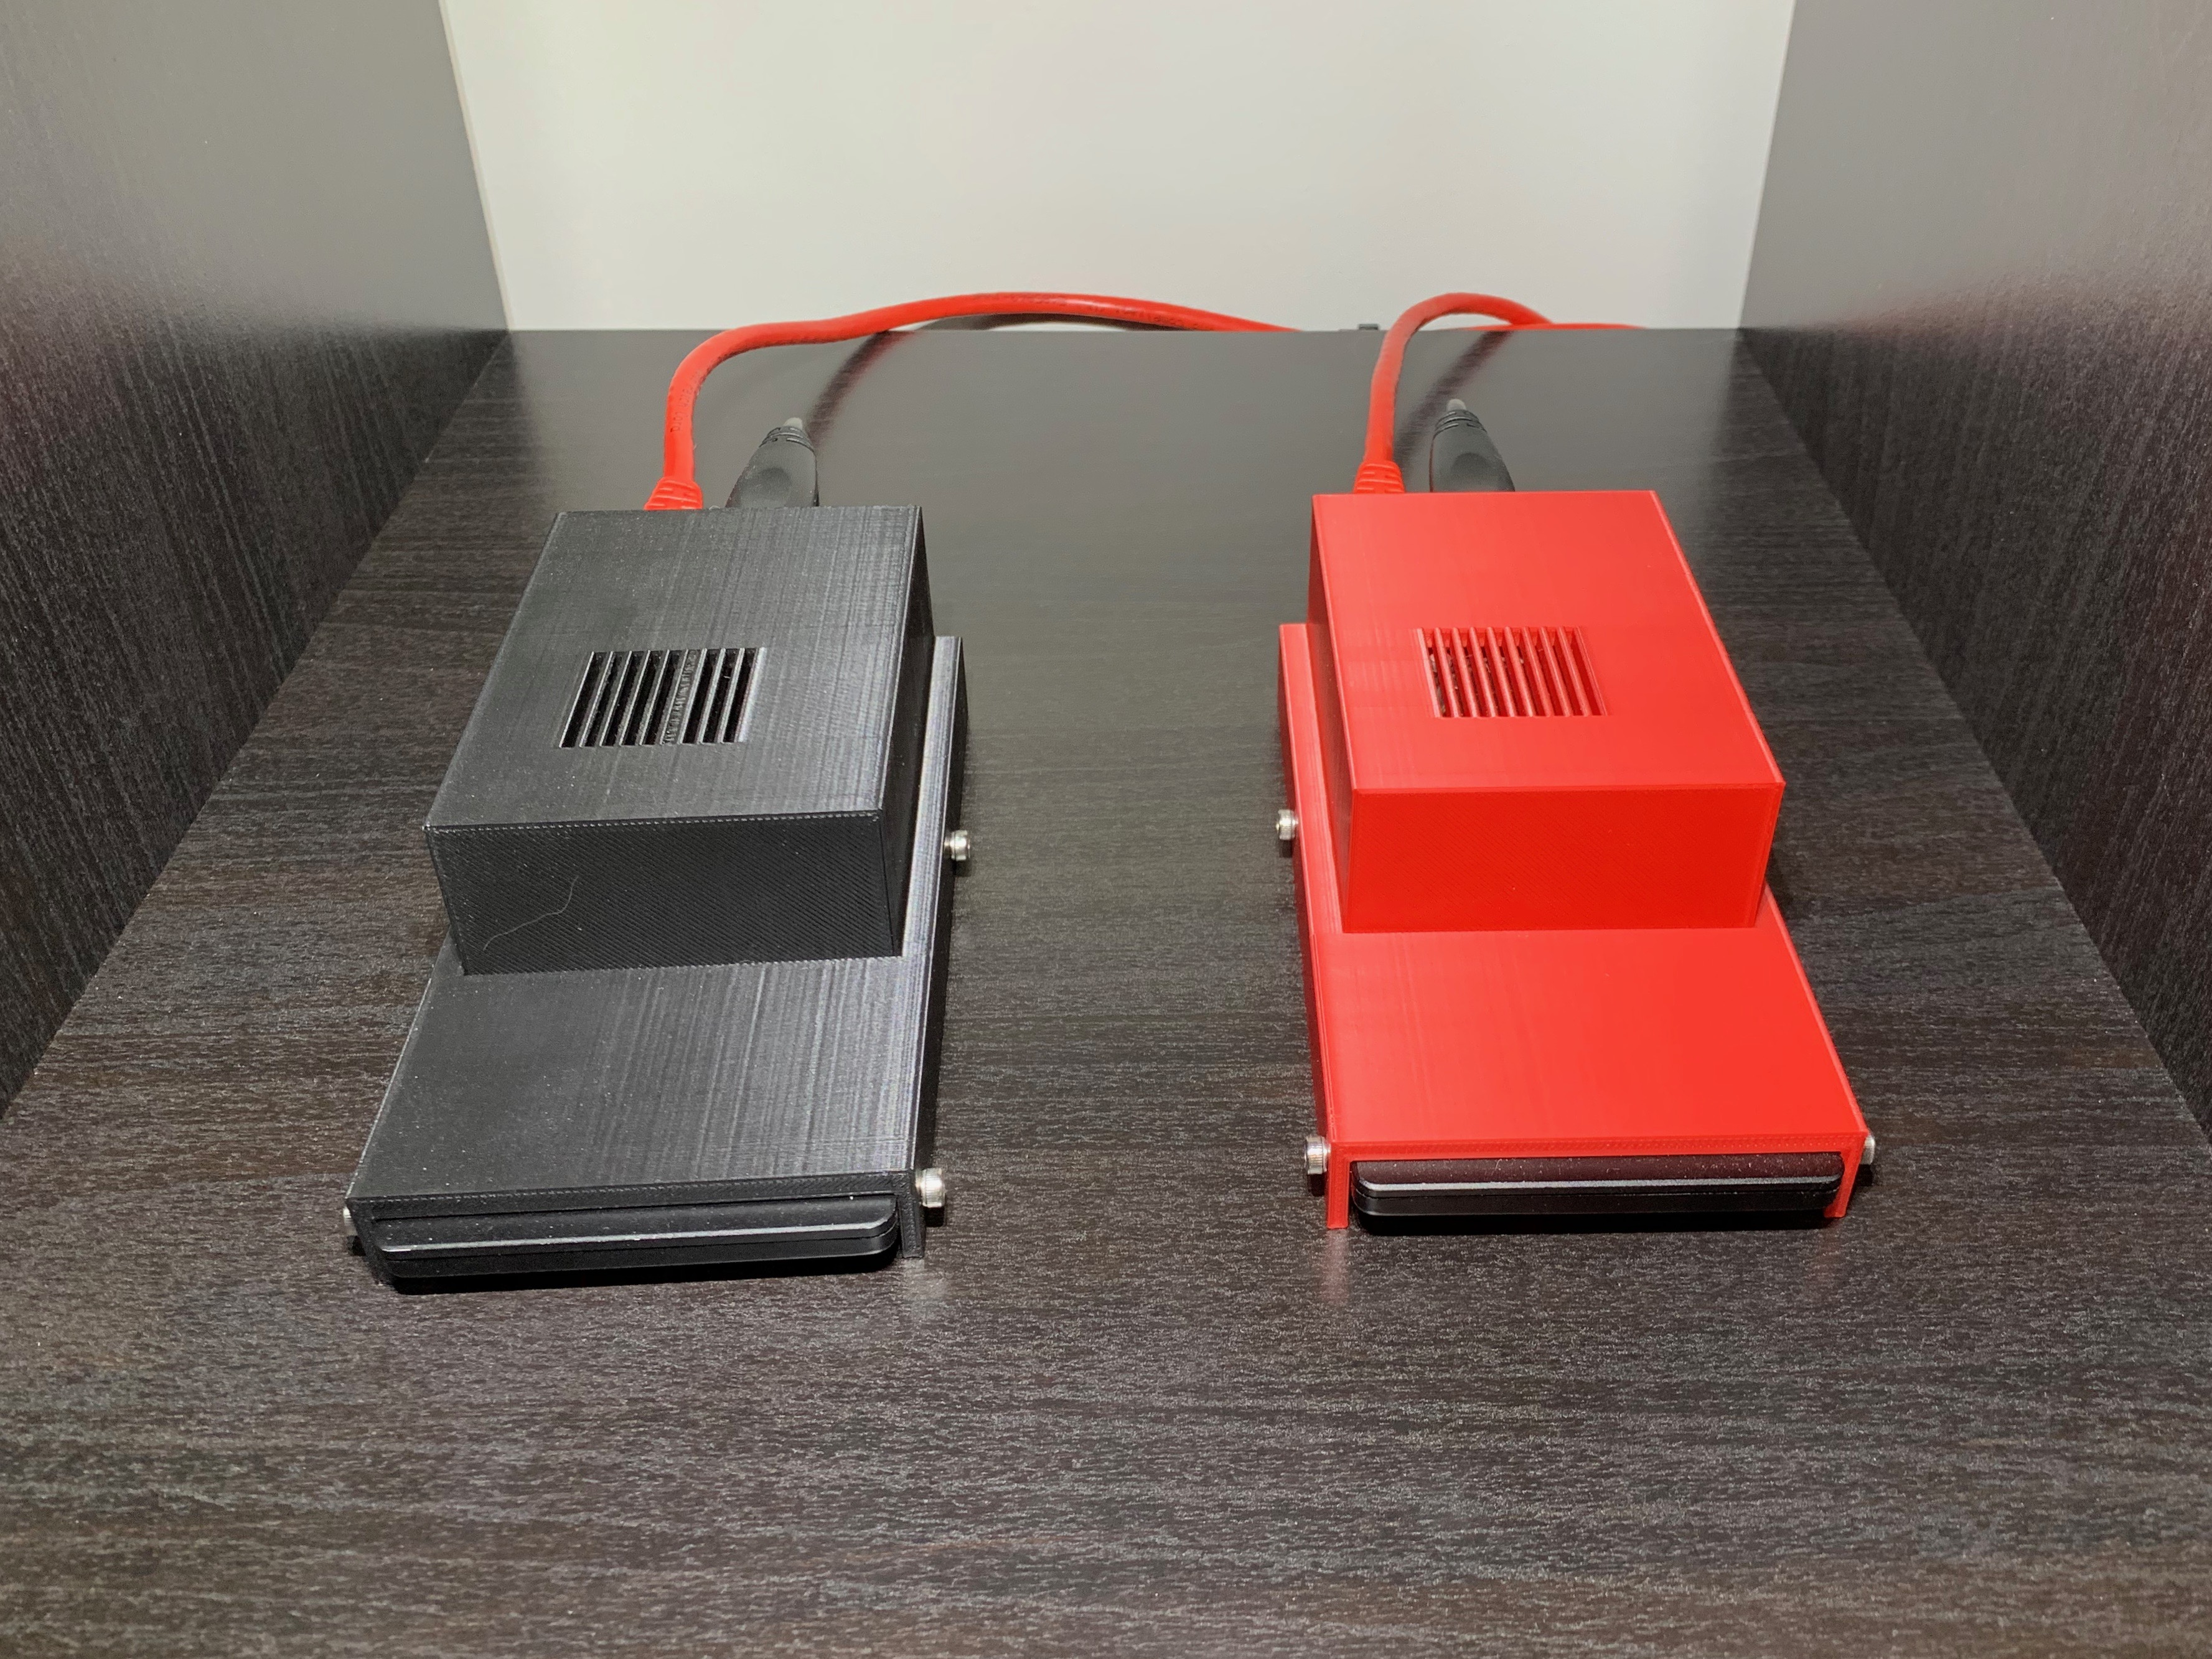 Pi 4 SSD cases with ethernet plugged in.